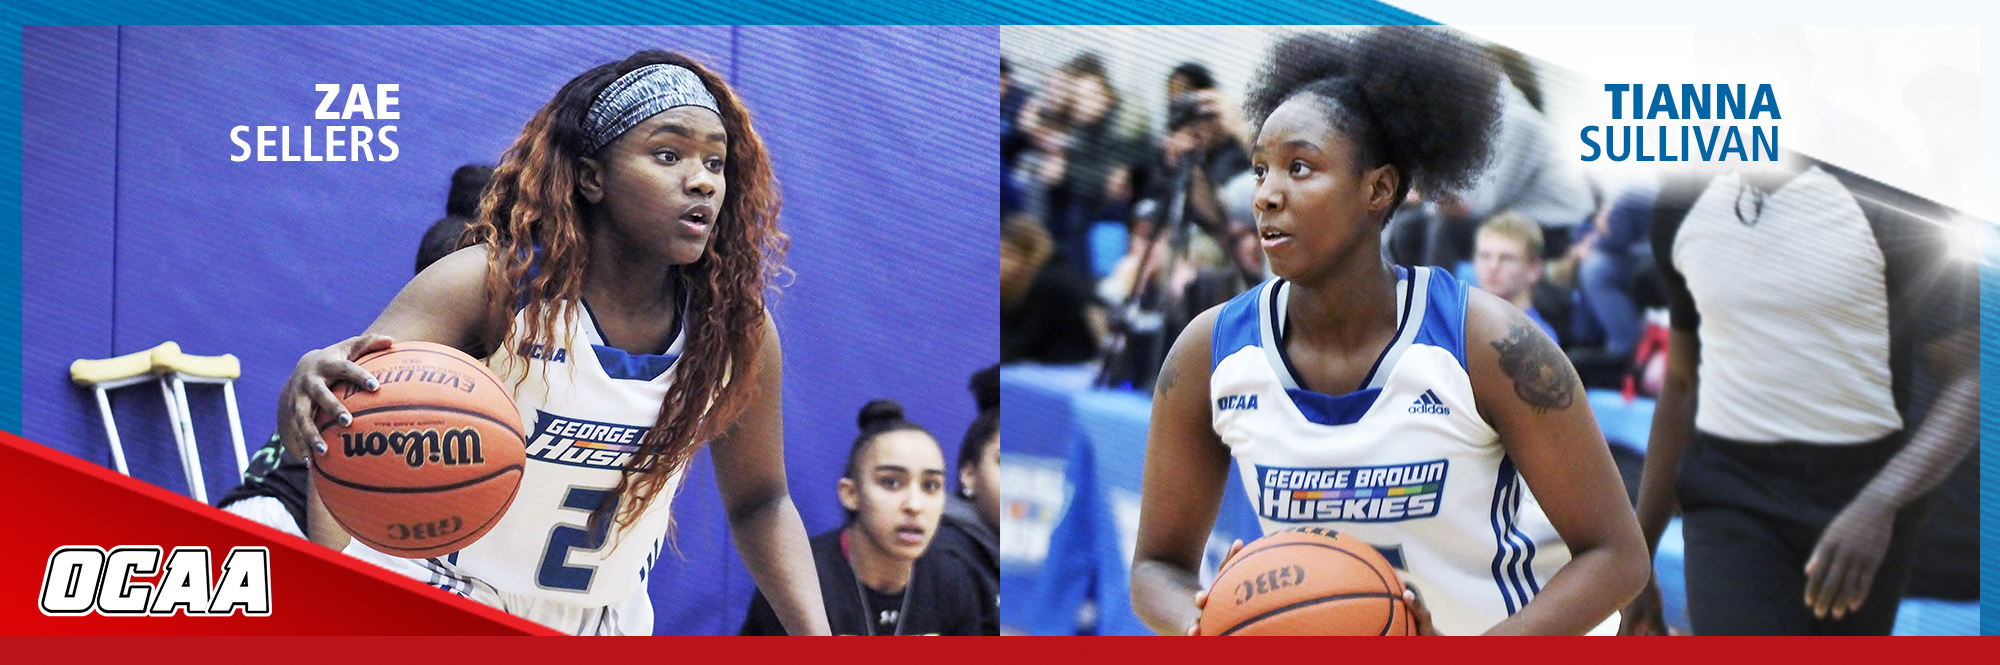 HUSKIES STARS TIANNA SULLIVAN AND ZAE SELLERS RECOGNIZED AT WOMEN'S BASKETBALL AWARDS BANQUET